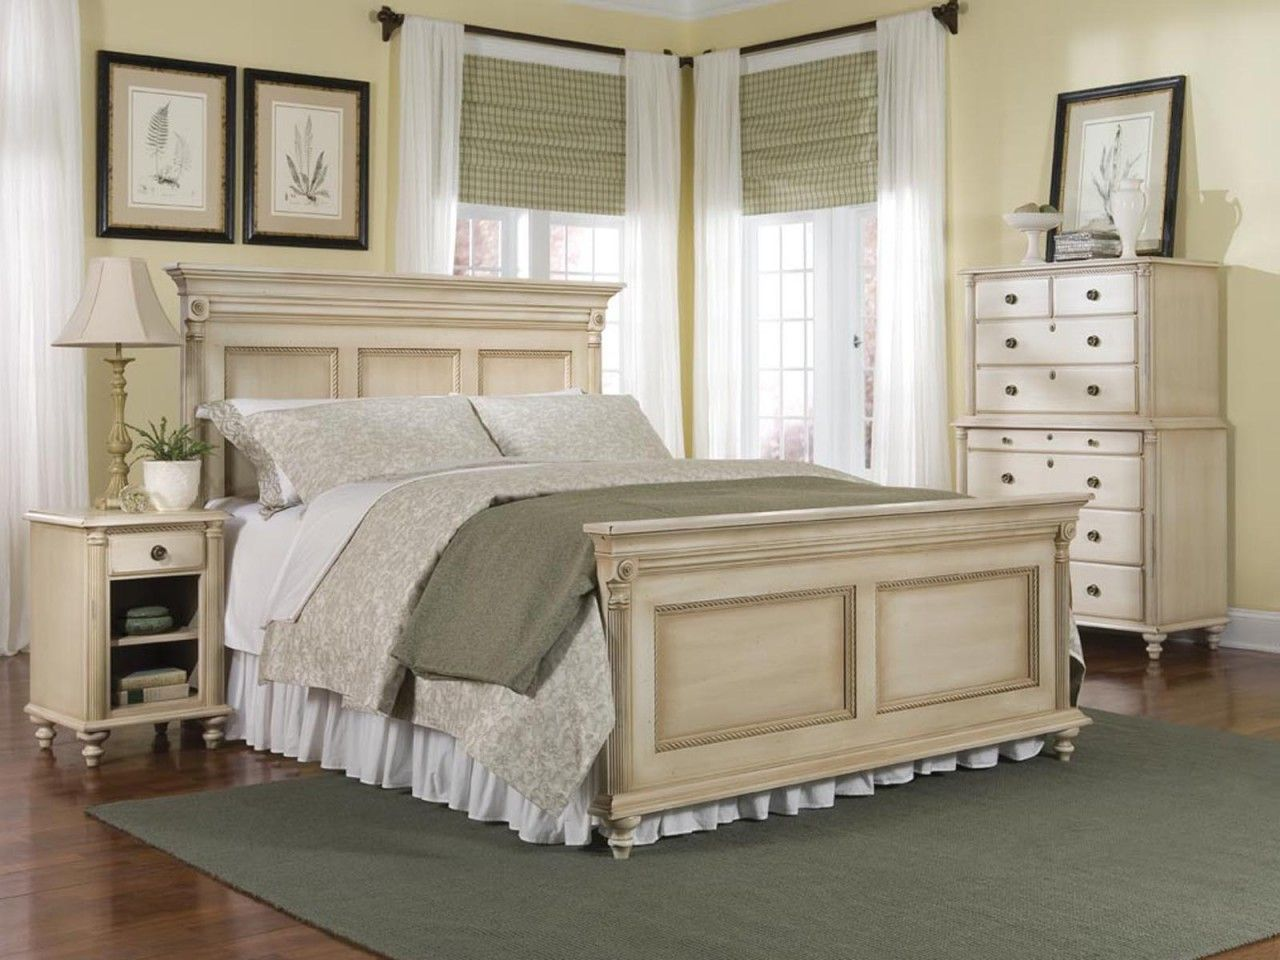 cream bedroom furniture setsDurham Furniture Savile Row 4 piece ...